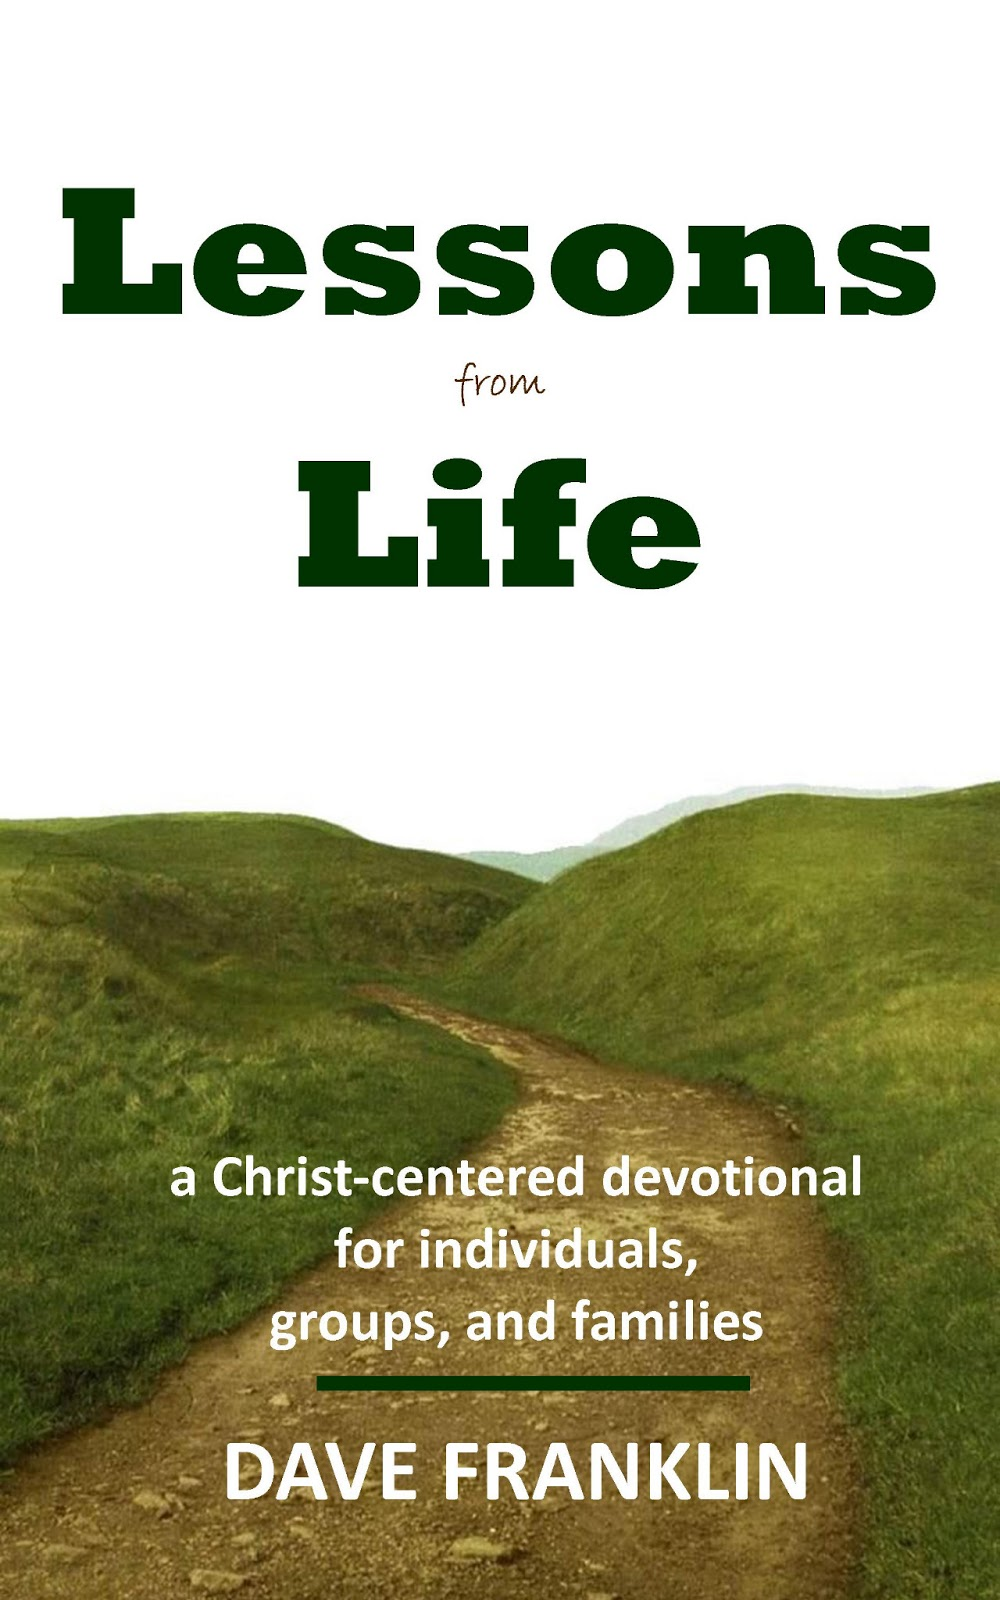 life lessons book review The power of habit review [dgh self help book reviews]  why we do what we do in life and  this section details important social habit lessons from the .